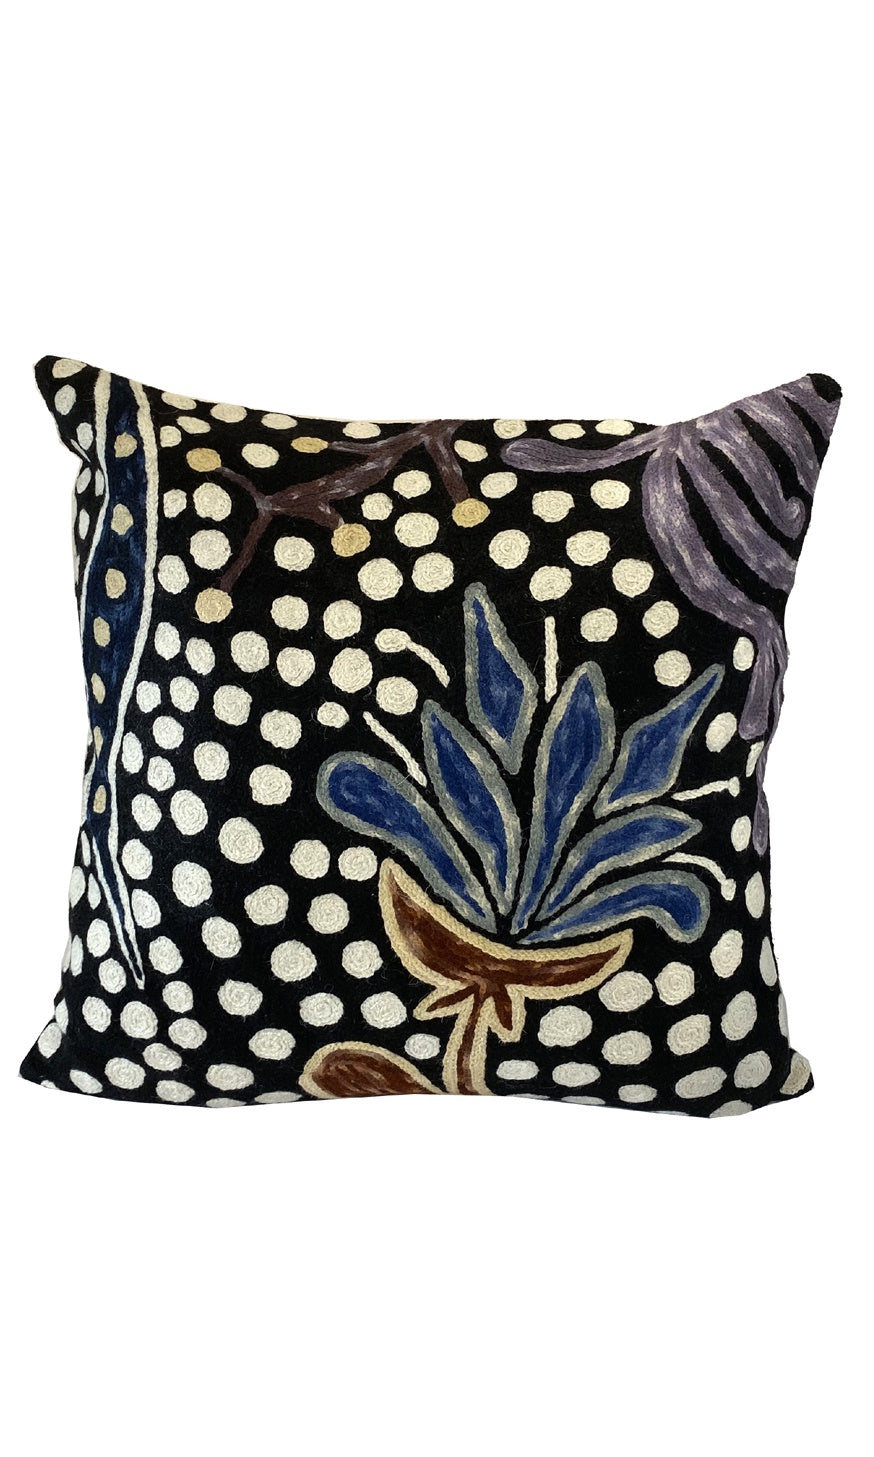 Aboriginal Art Cushion Cover by Bianca Gardener Dodd (3)